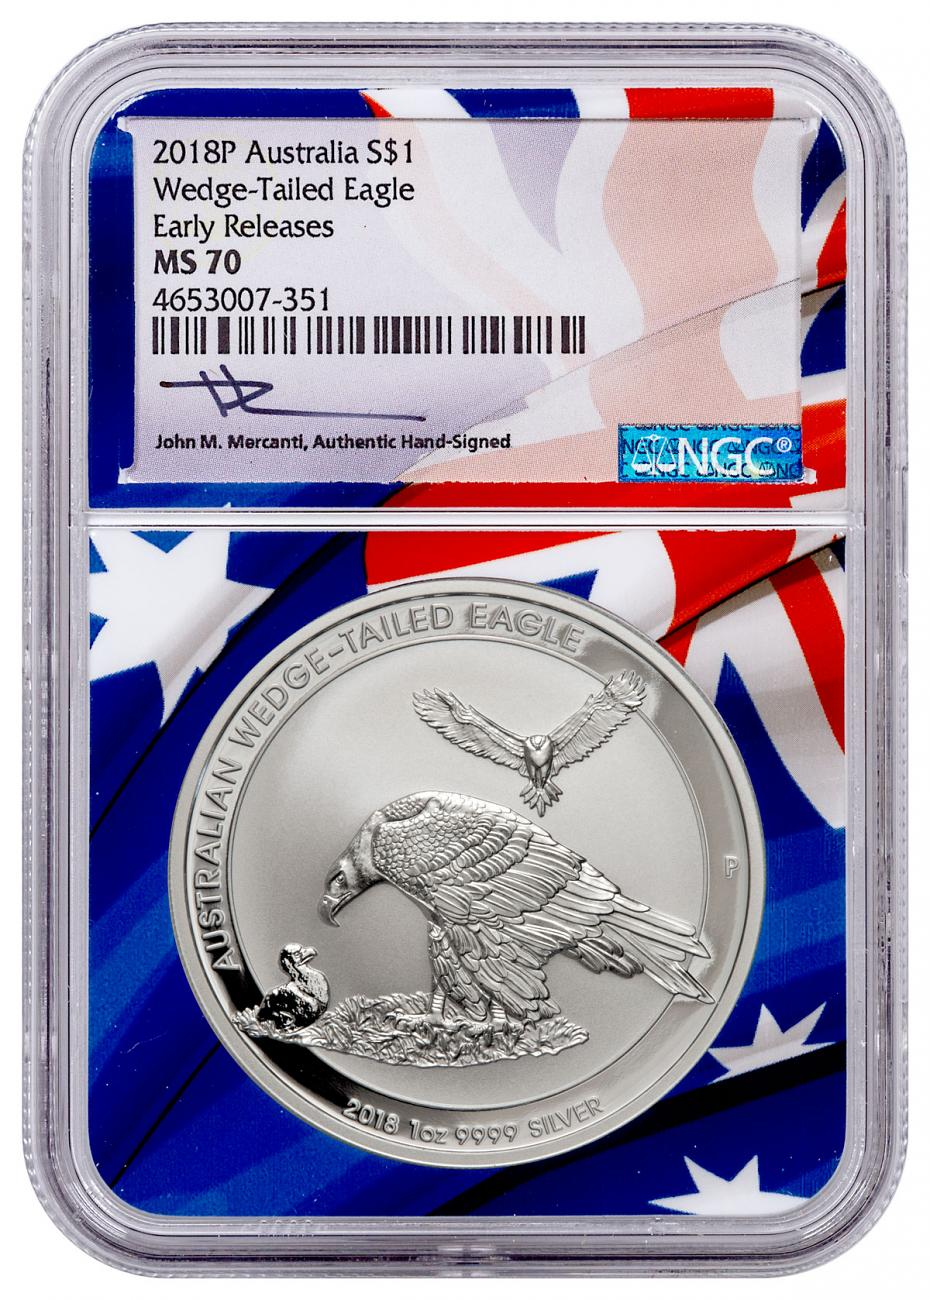 2018 Australia 1 oz Silver Wedge-Tailed Eagle $1 Coin NGC MS70 ER Flag Core Mercanti Signed Label